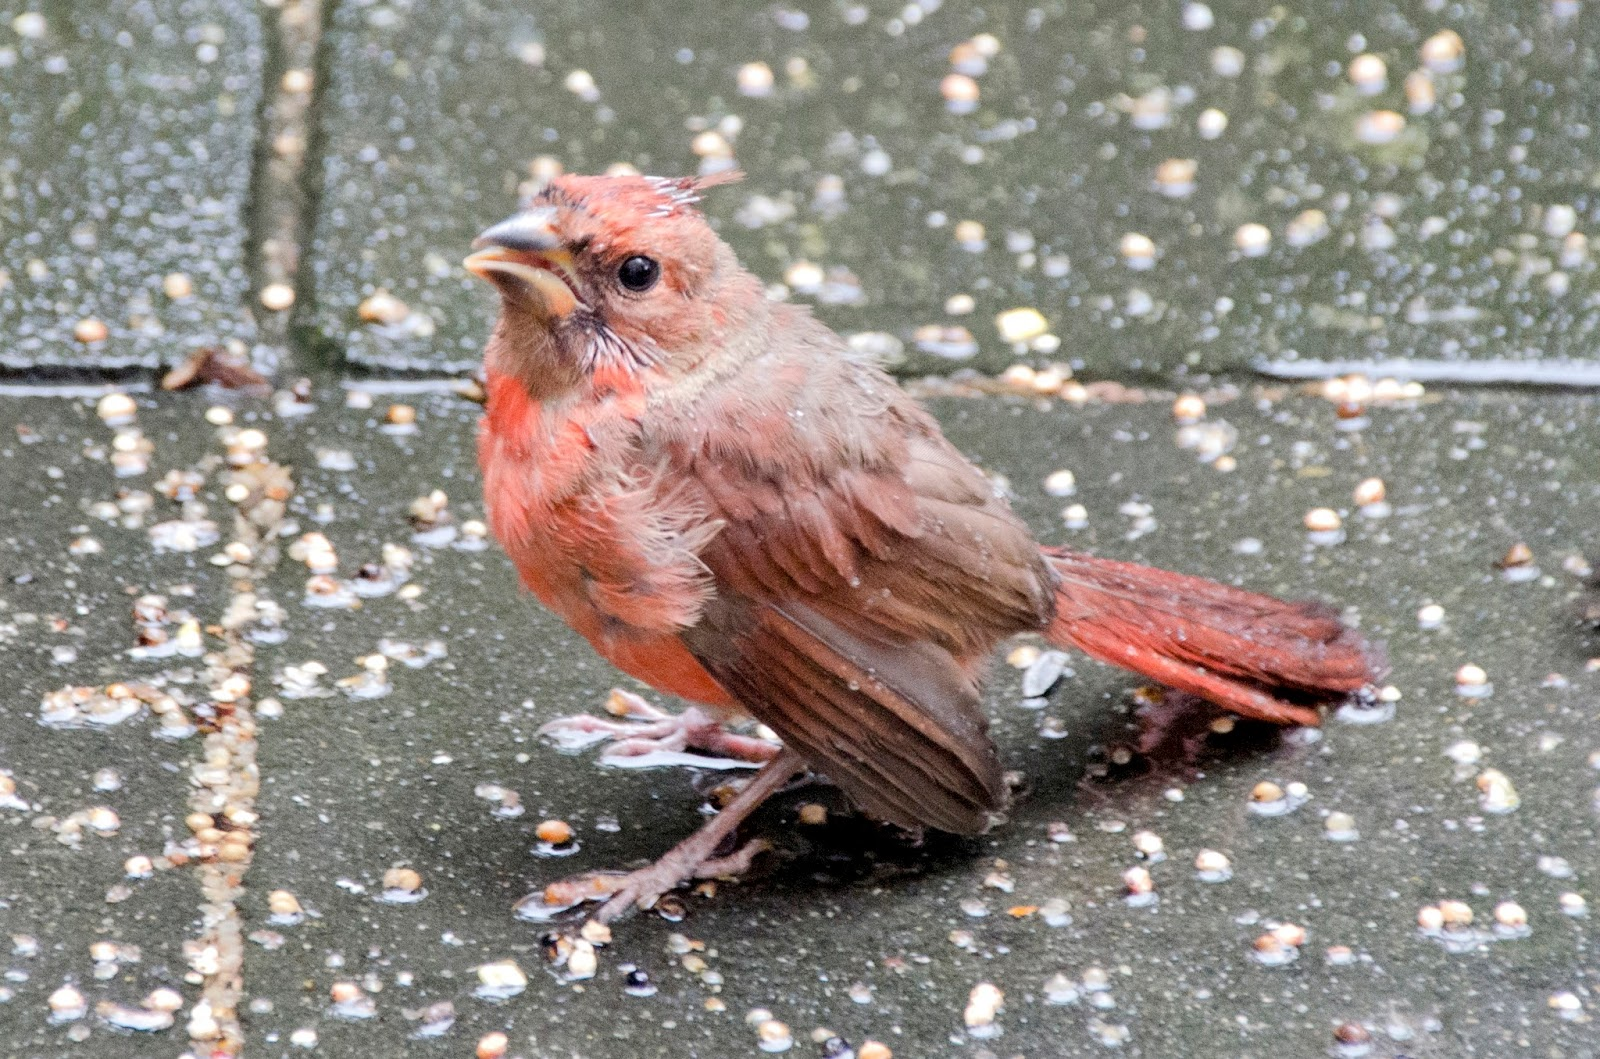 Baby Cardinal poses for the camera